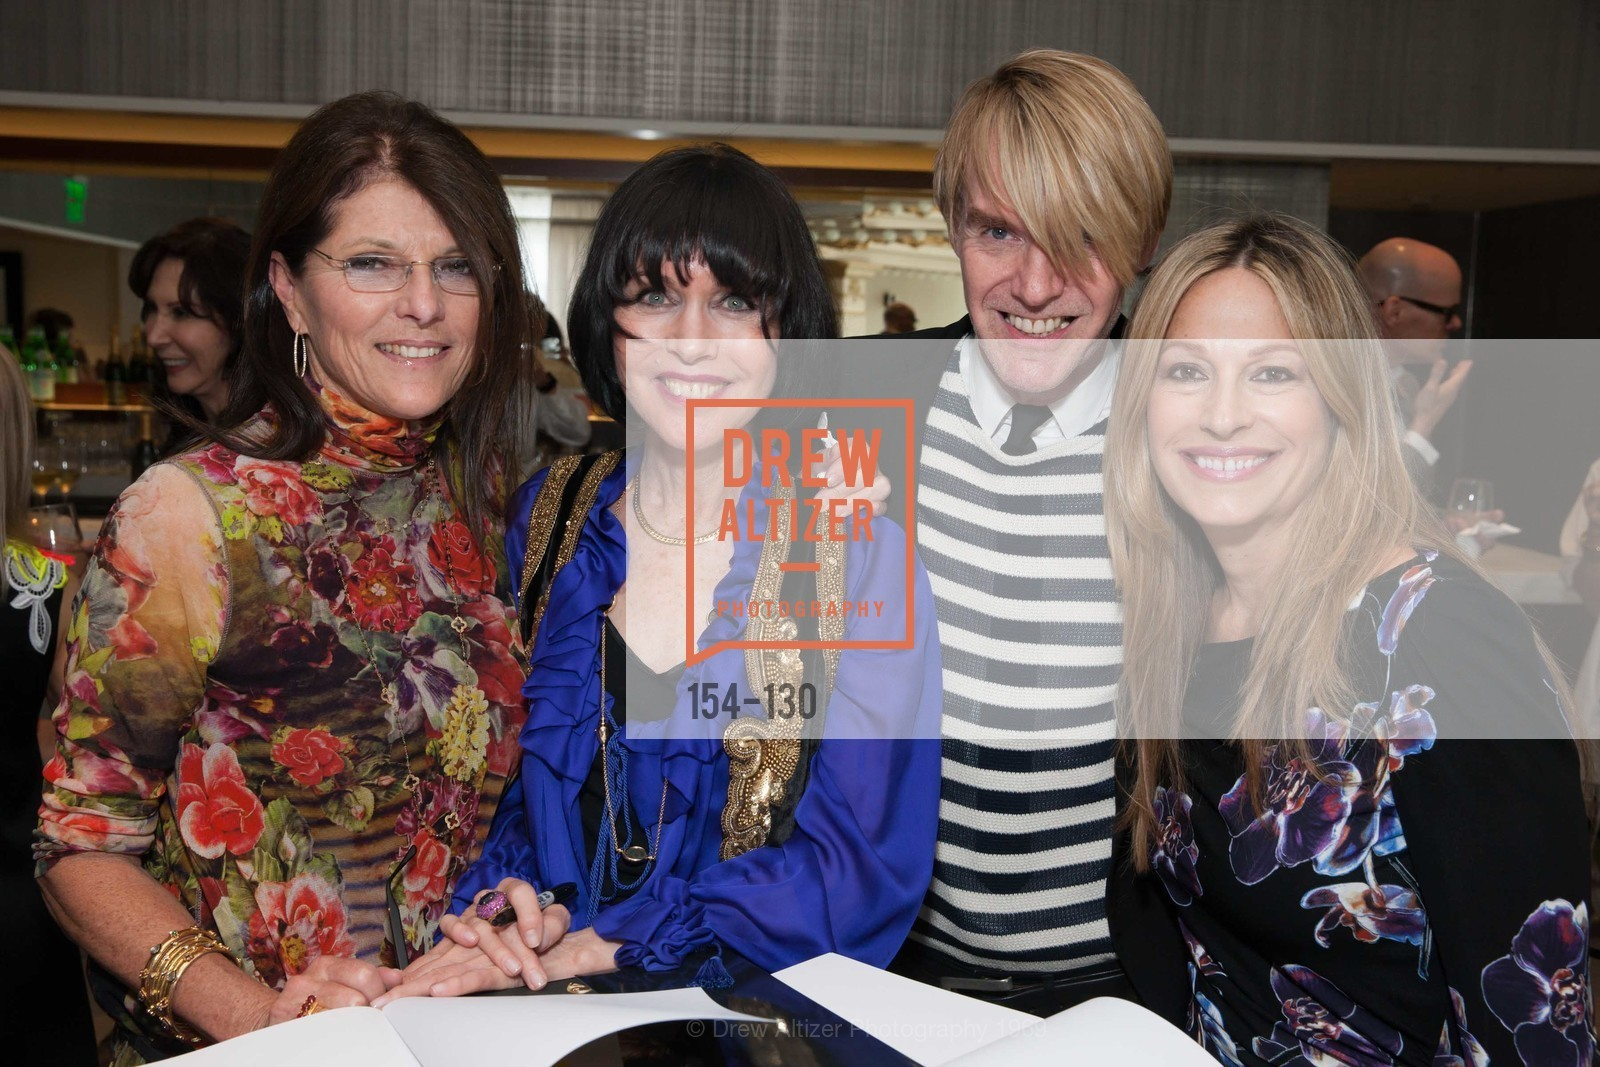 Lorrae Rominger, Christine Suppes, Ken Downing, Carolyne Zinko, Electric Fashion Book Signing with Christine Suppes & Ken Downing, Neiman Marcus, Rotunda, May 26th, 2015,Drew Altizer, Drew Altizer Photography, full-service agency, private events, San Francisco photographer, photographer california